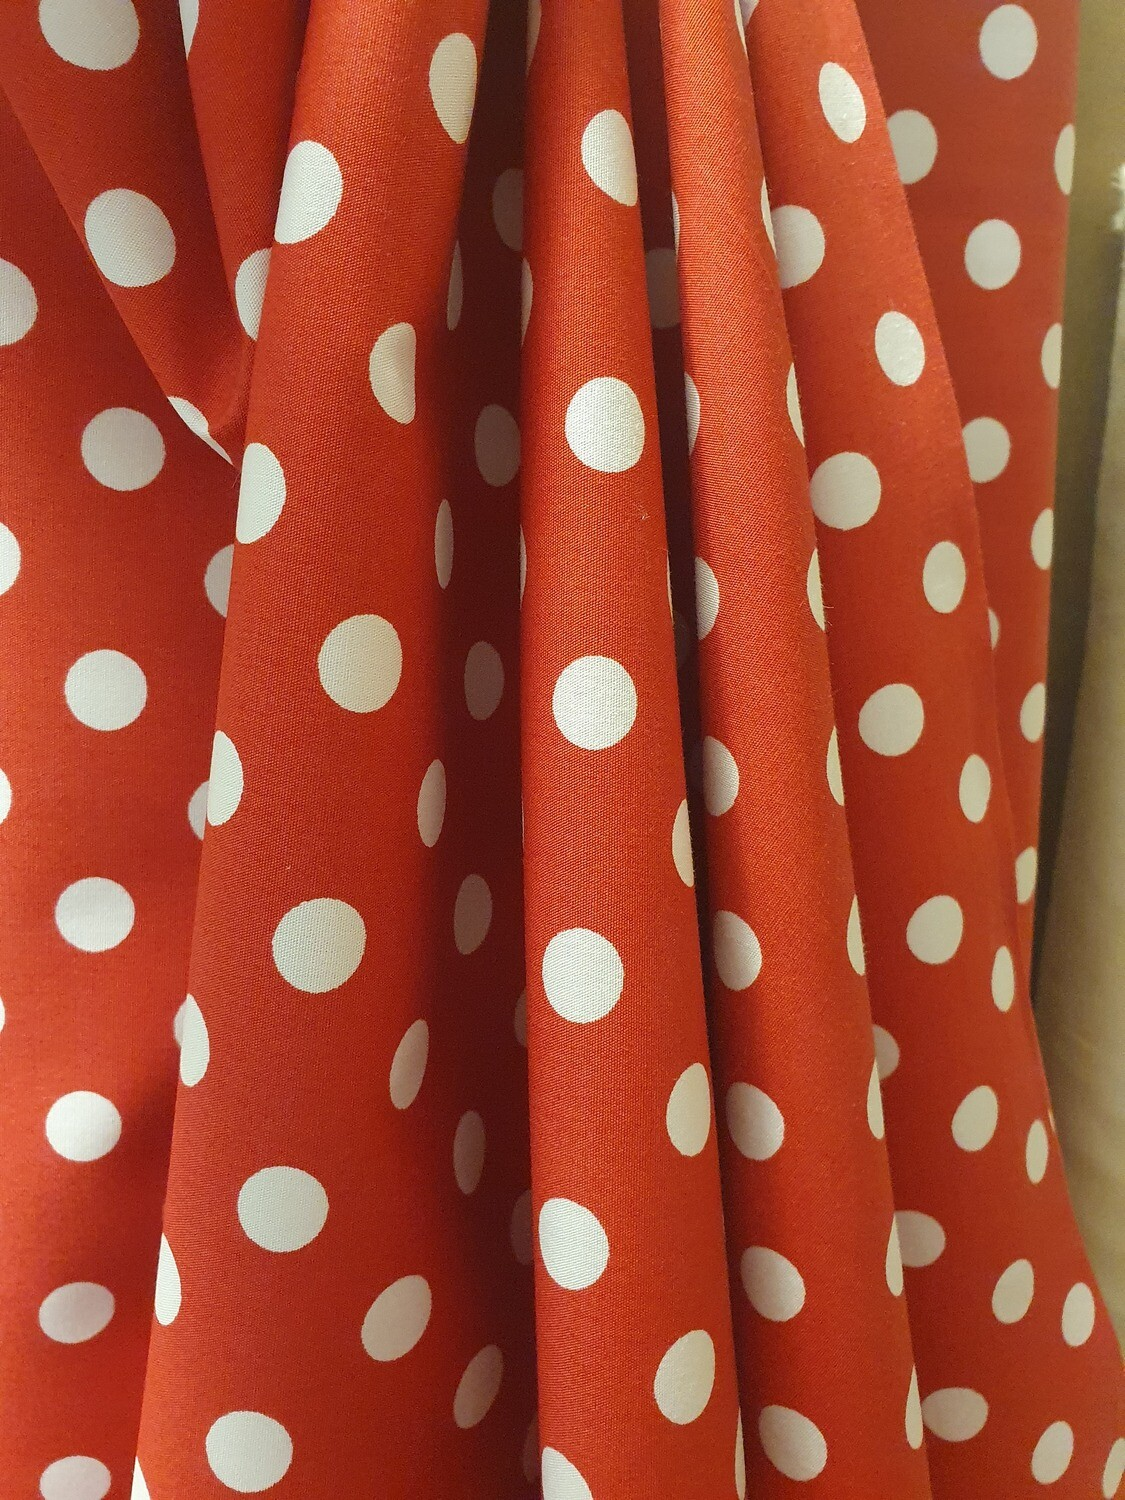 Polka Dots - Red with white spots